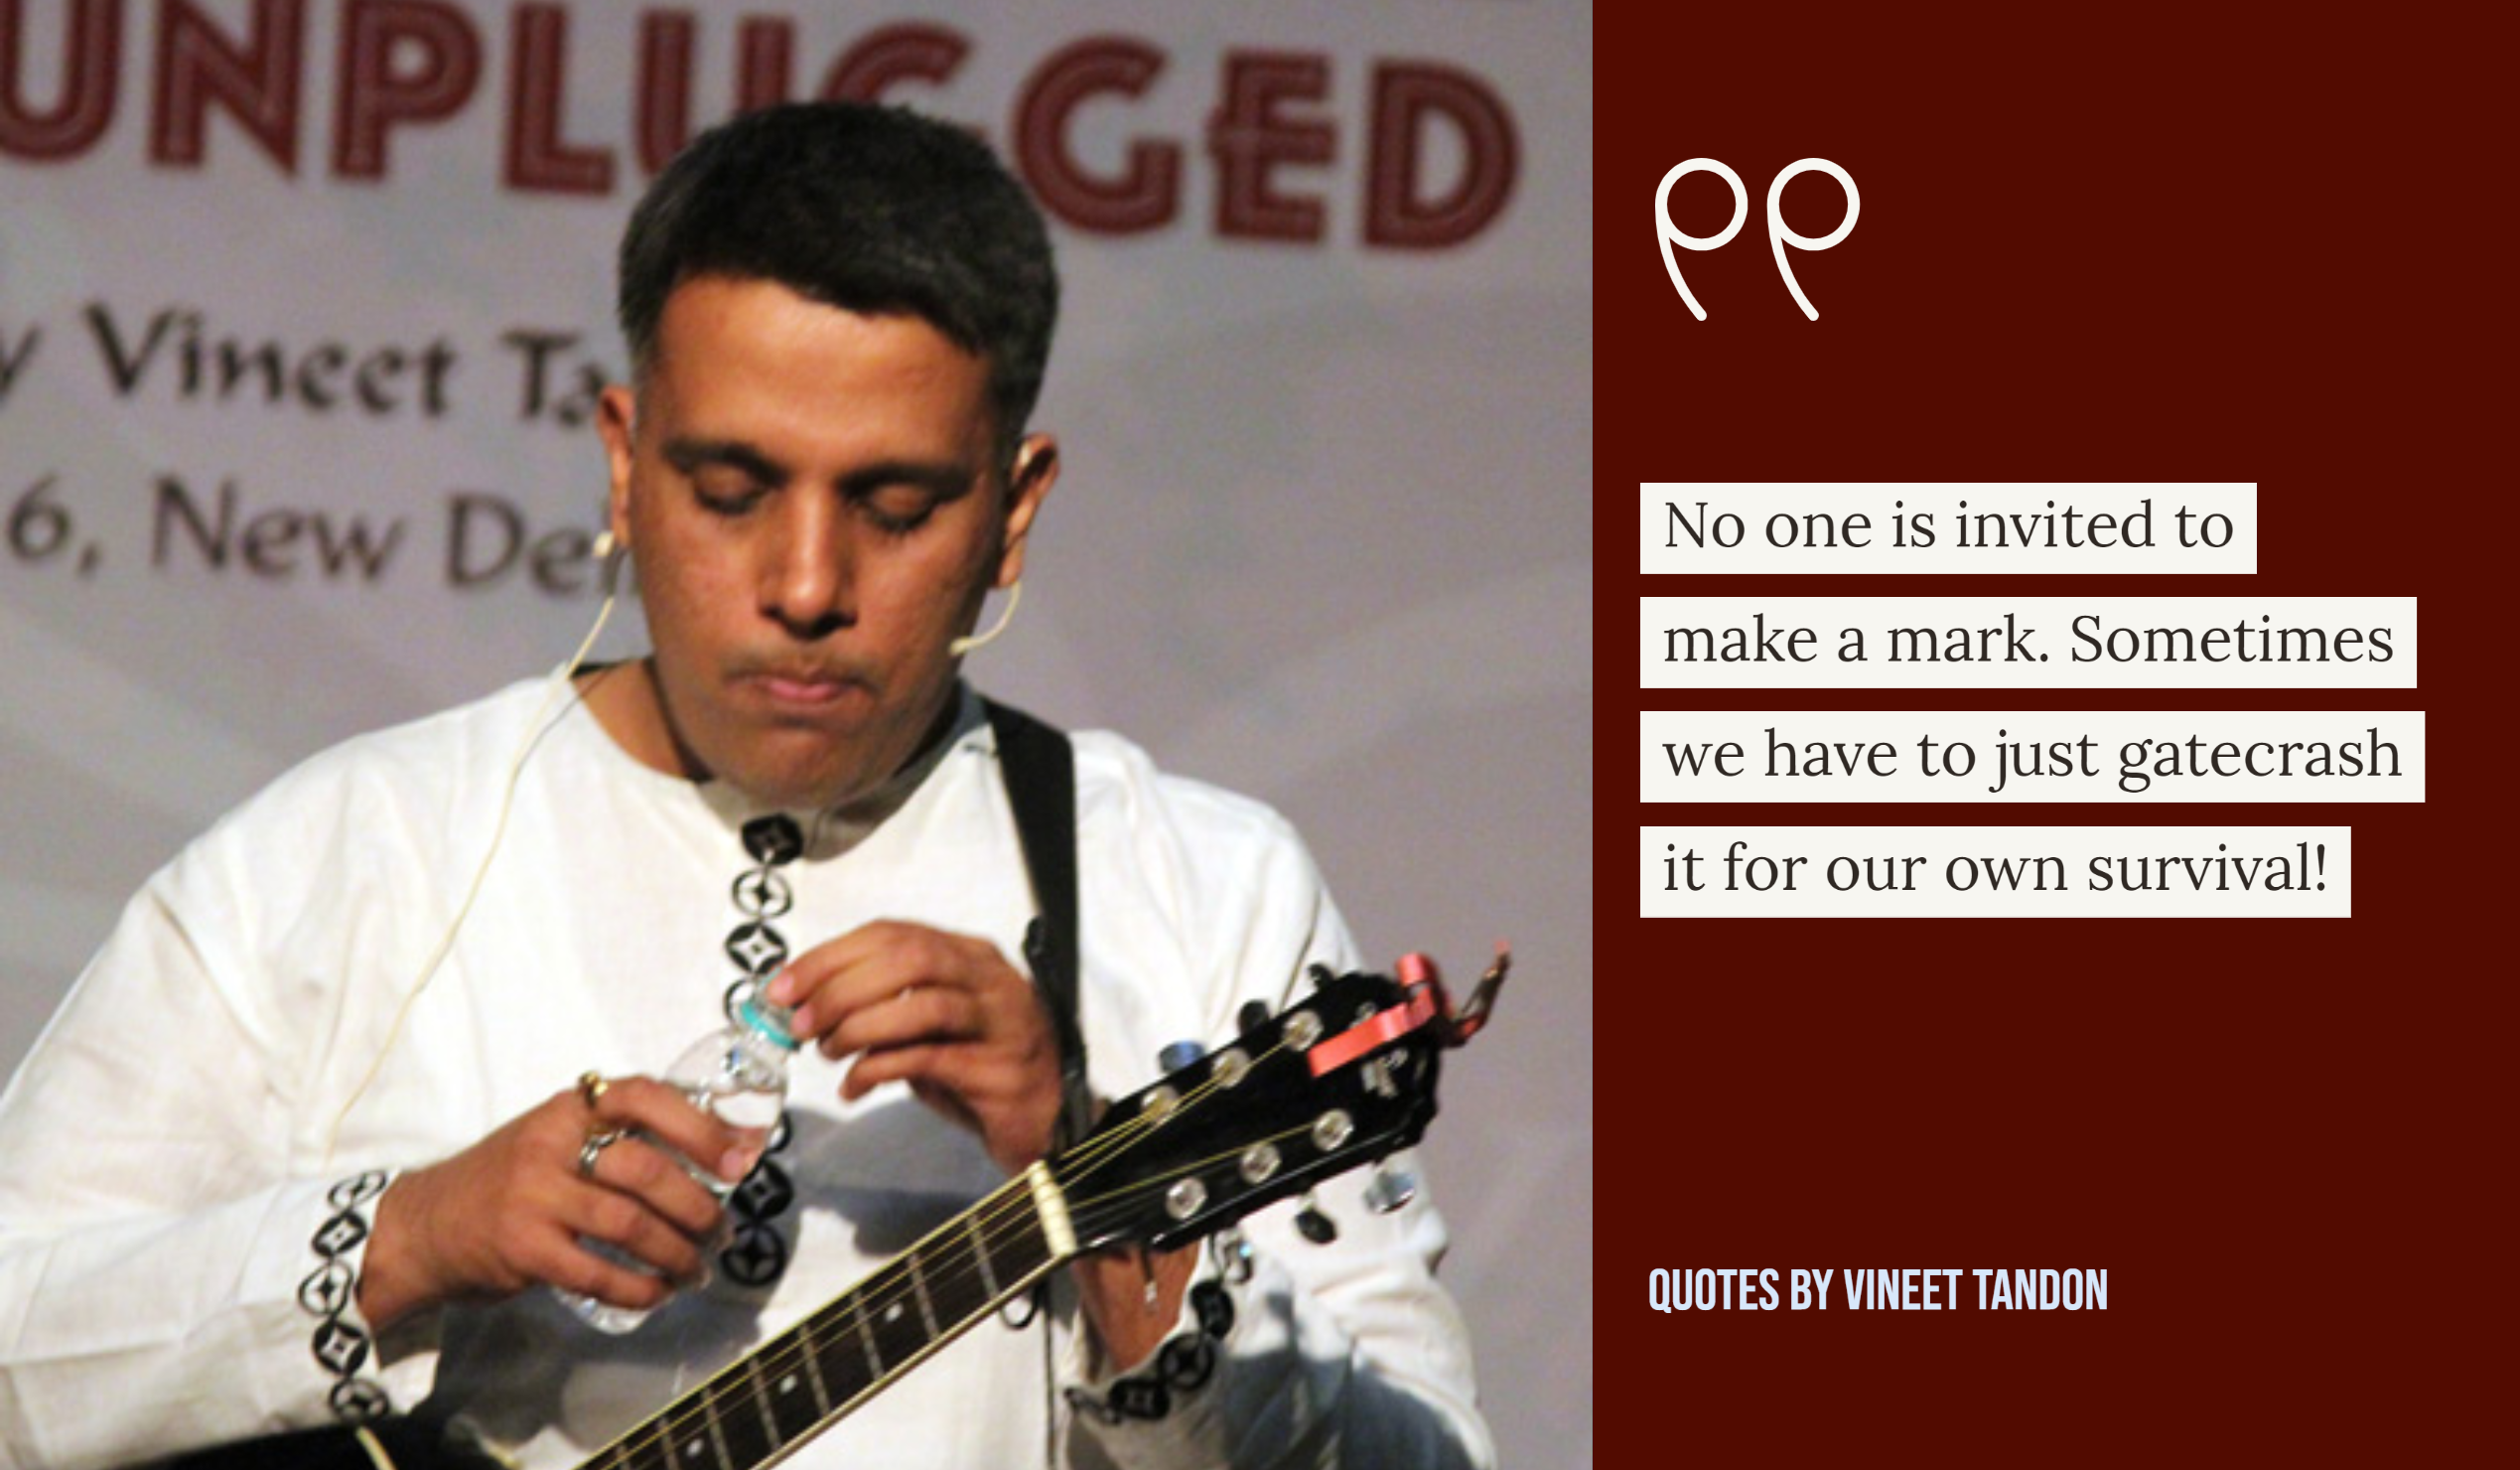 Quotes By Vineet Tandon 06